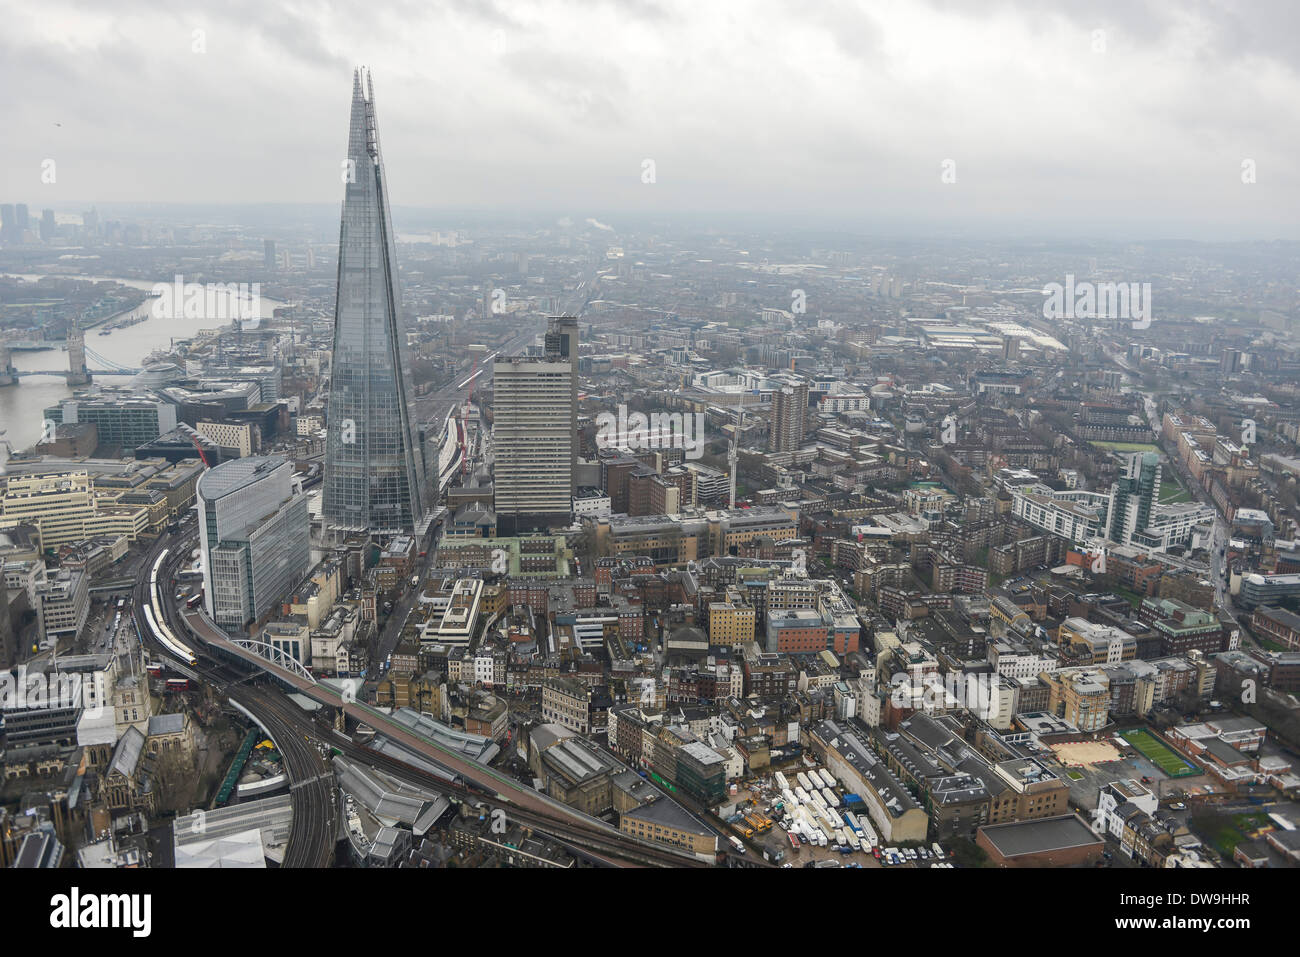 Aerial Photograph showing The Shard and Surroundings in Southwark, London, United Kingdom - Stock Image